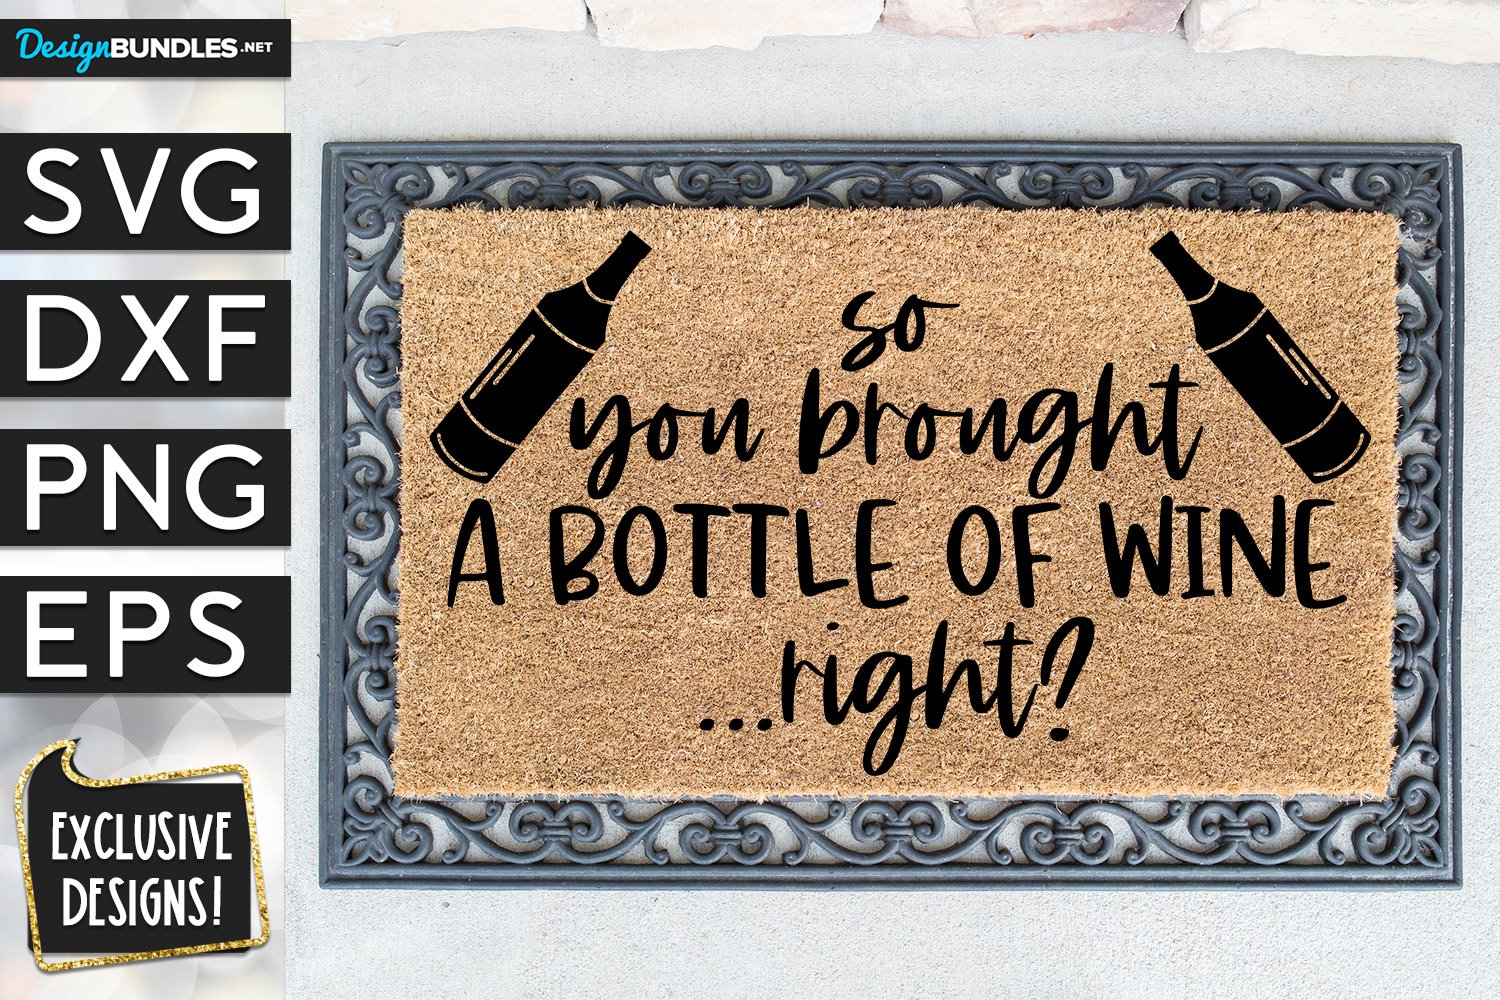 So You Brought A Bottle Of Wine Right SVG DXF PNG EPS example image 1